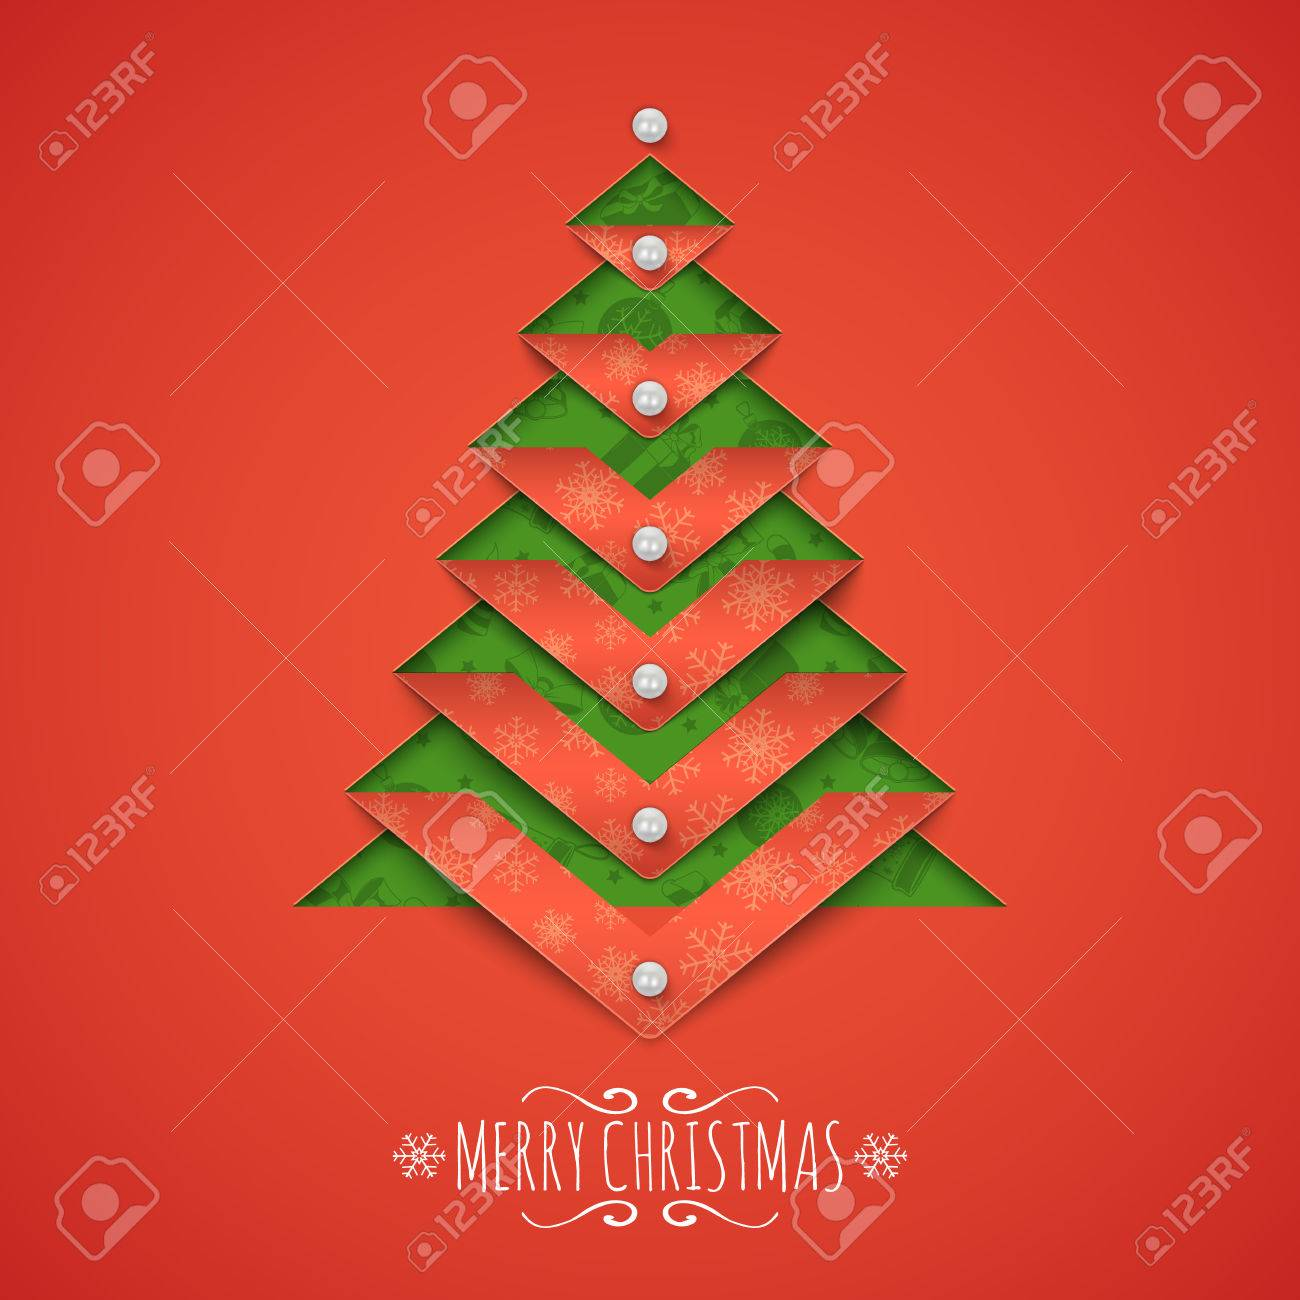 paper cut out christmas tree and text greeting card vector template